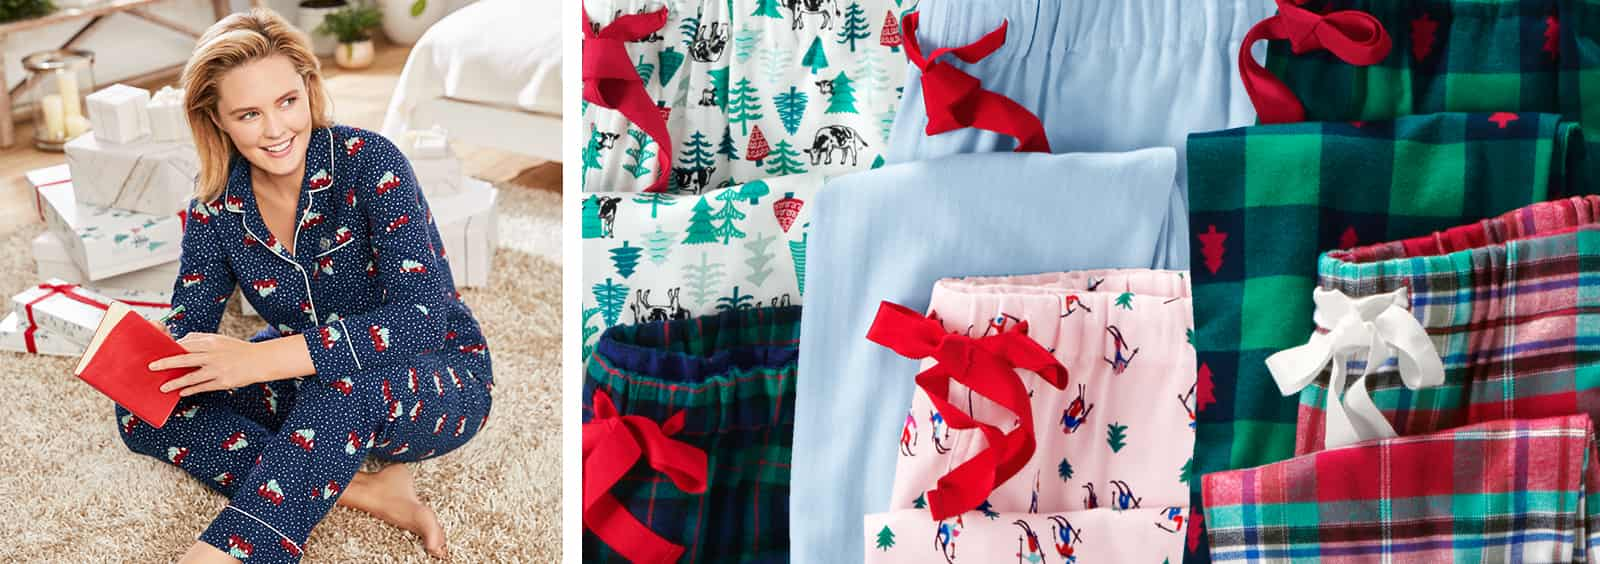 The Best Christmas Gifts to Buy Your Mom